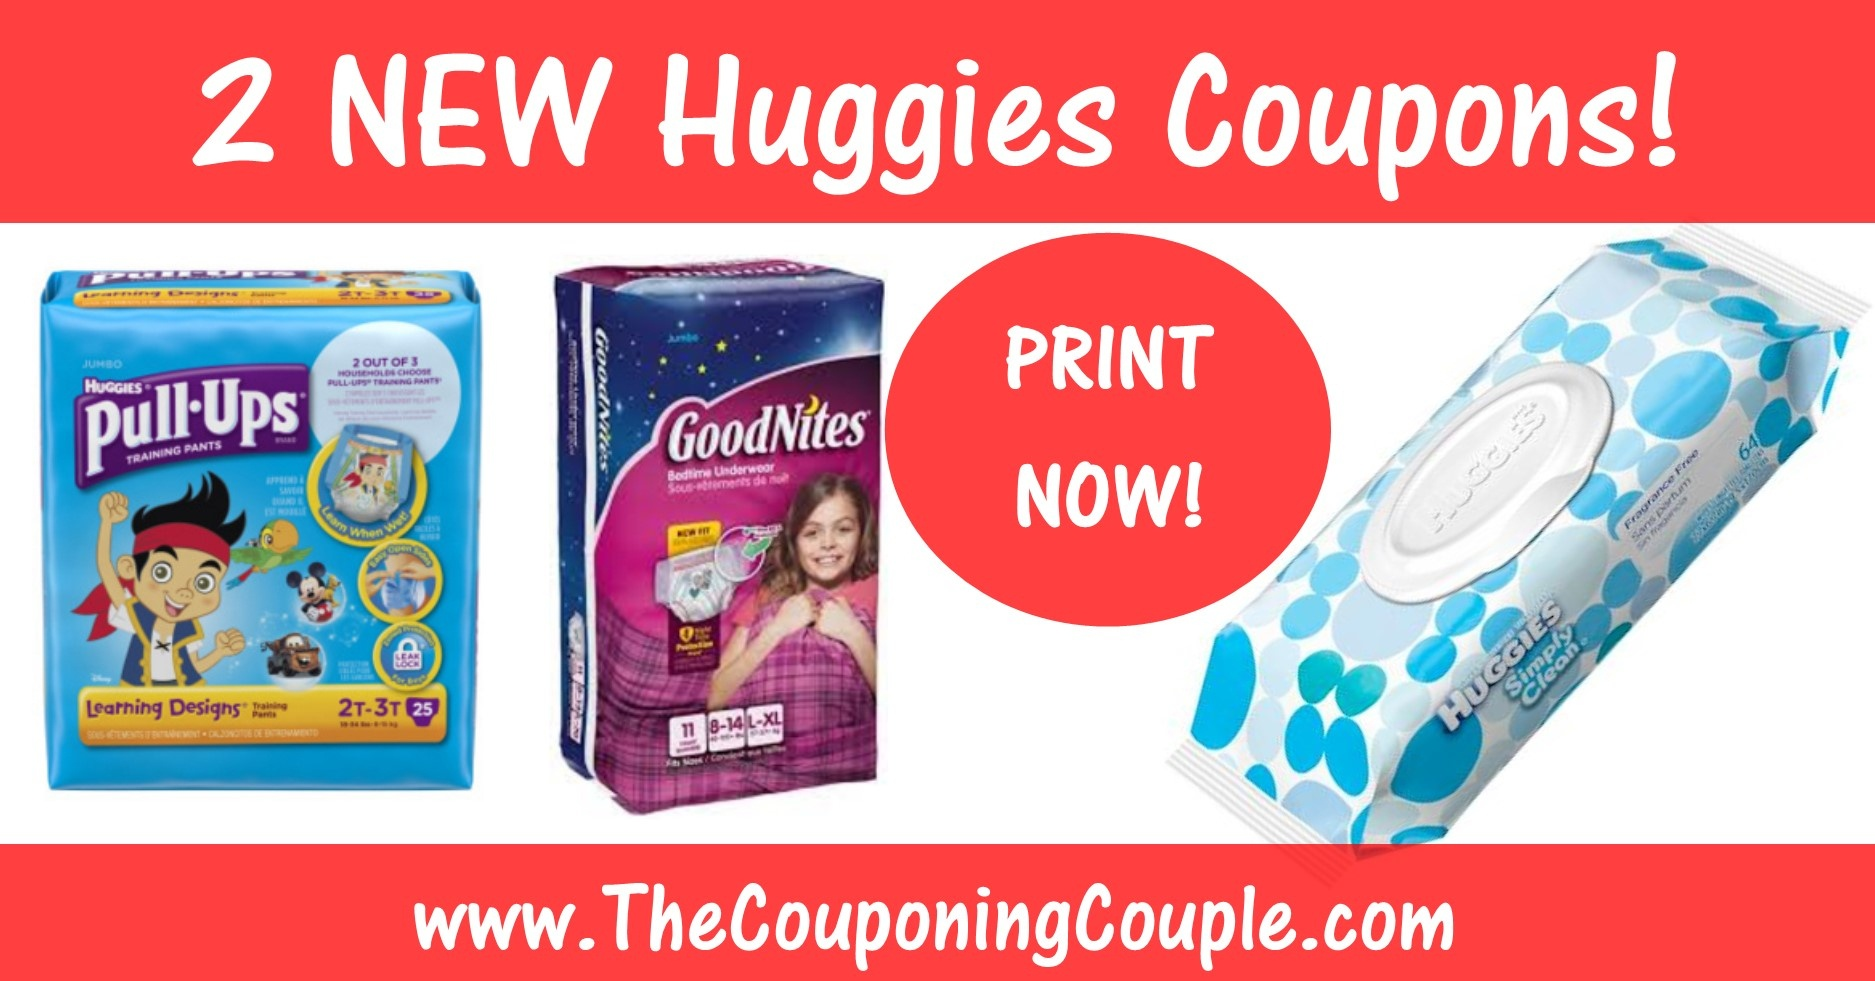 Huggies Wipes Printable Coupon + Pull-Ups & Goodnites Printable Coupon - Free Printable Coupons For Huggies Pull Ups